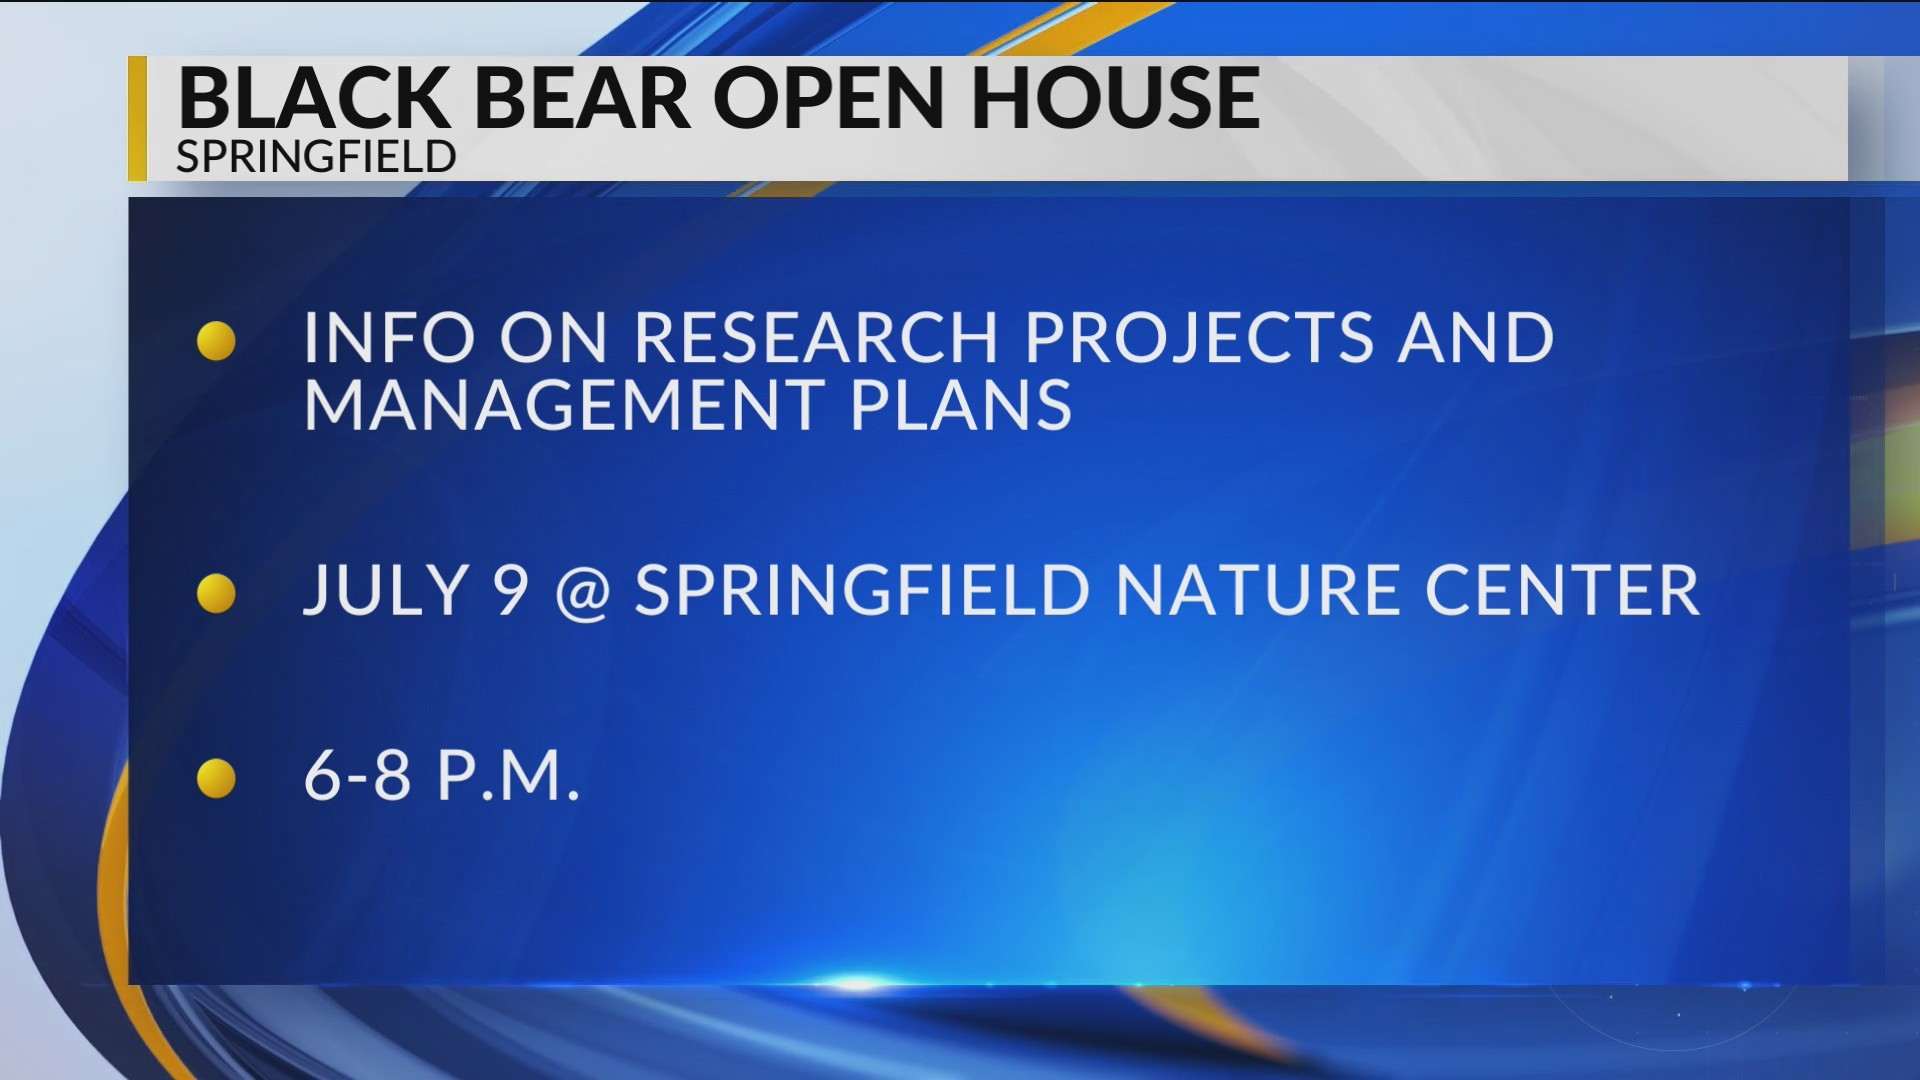 Black_Bear_Open_House_0_20190610221701